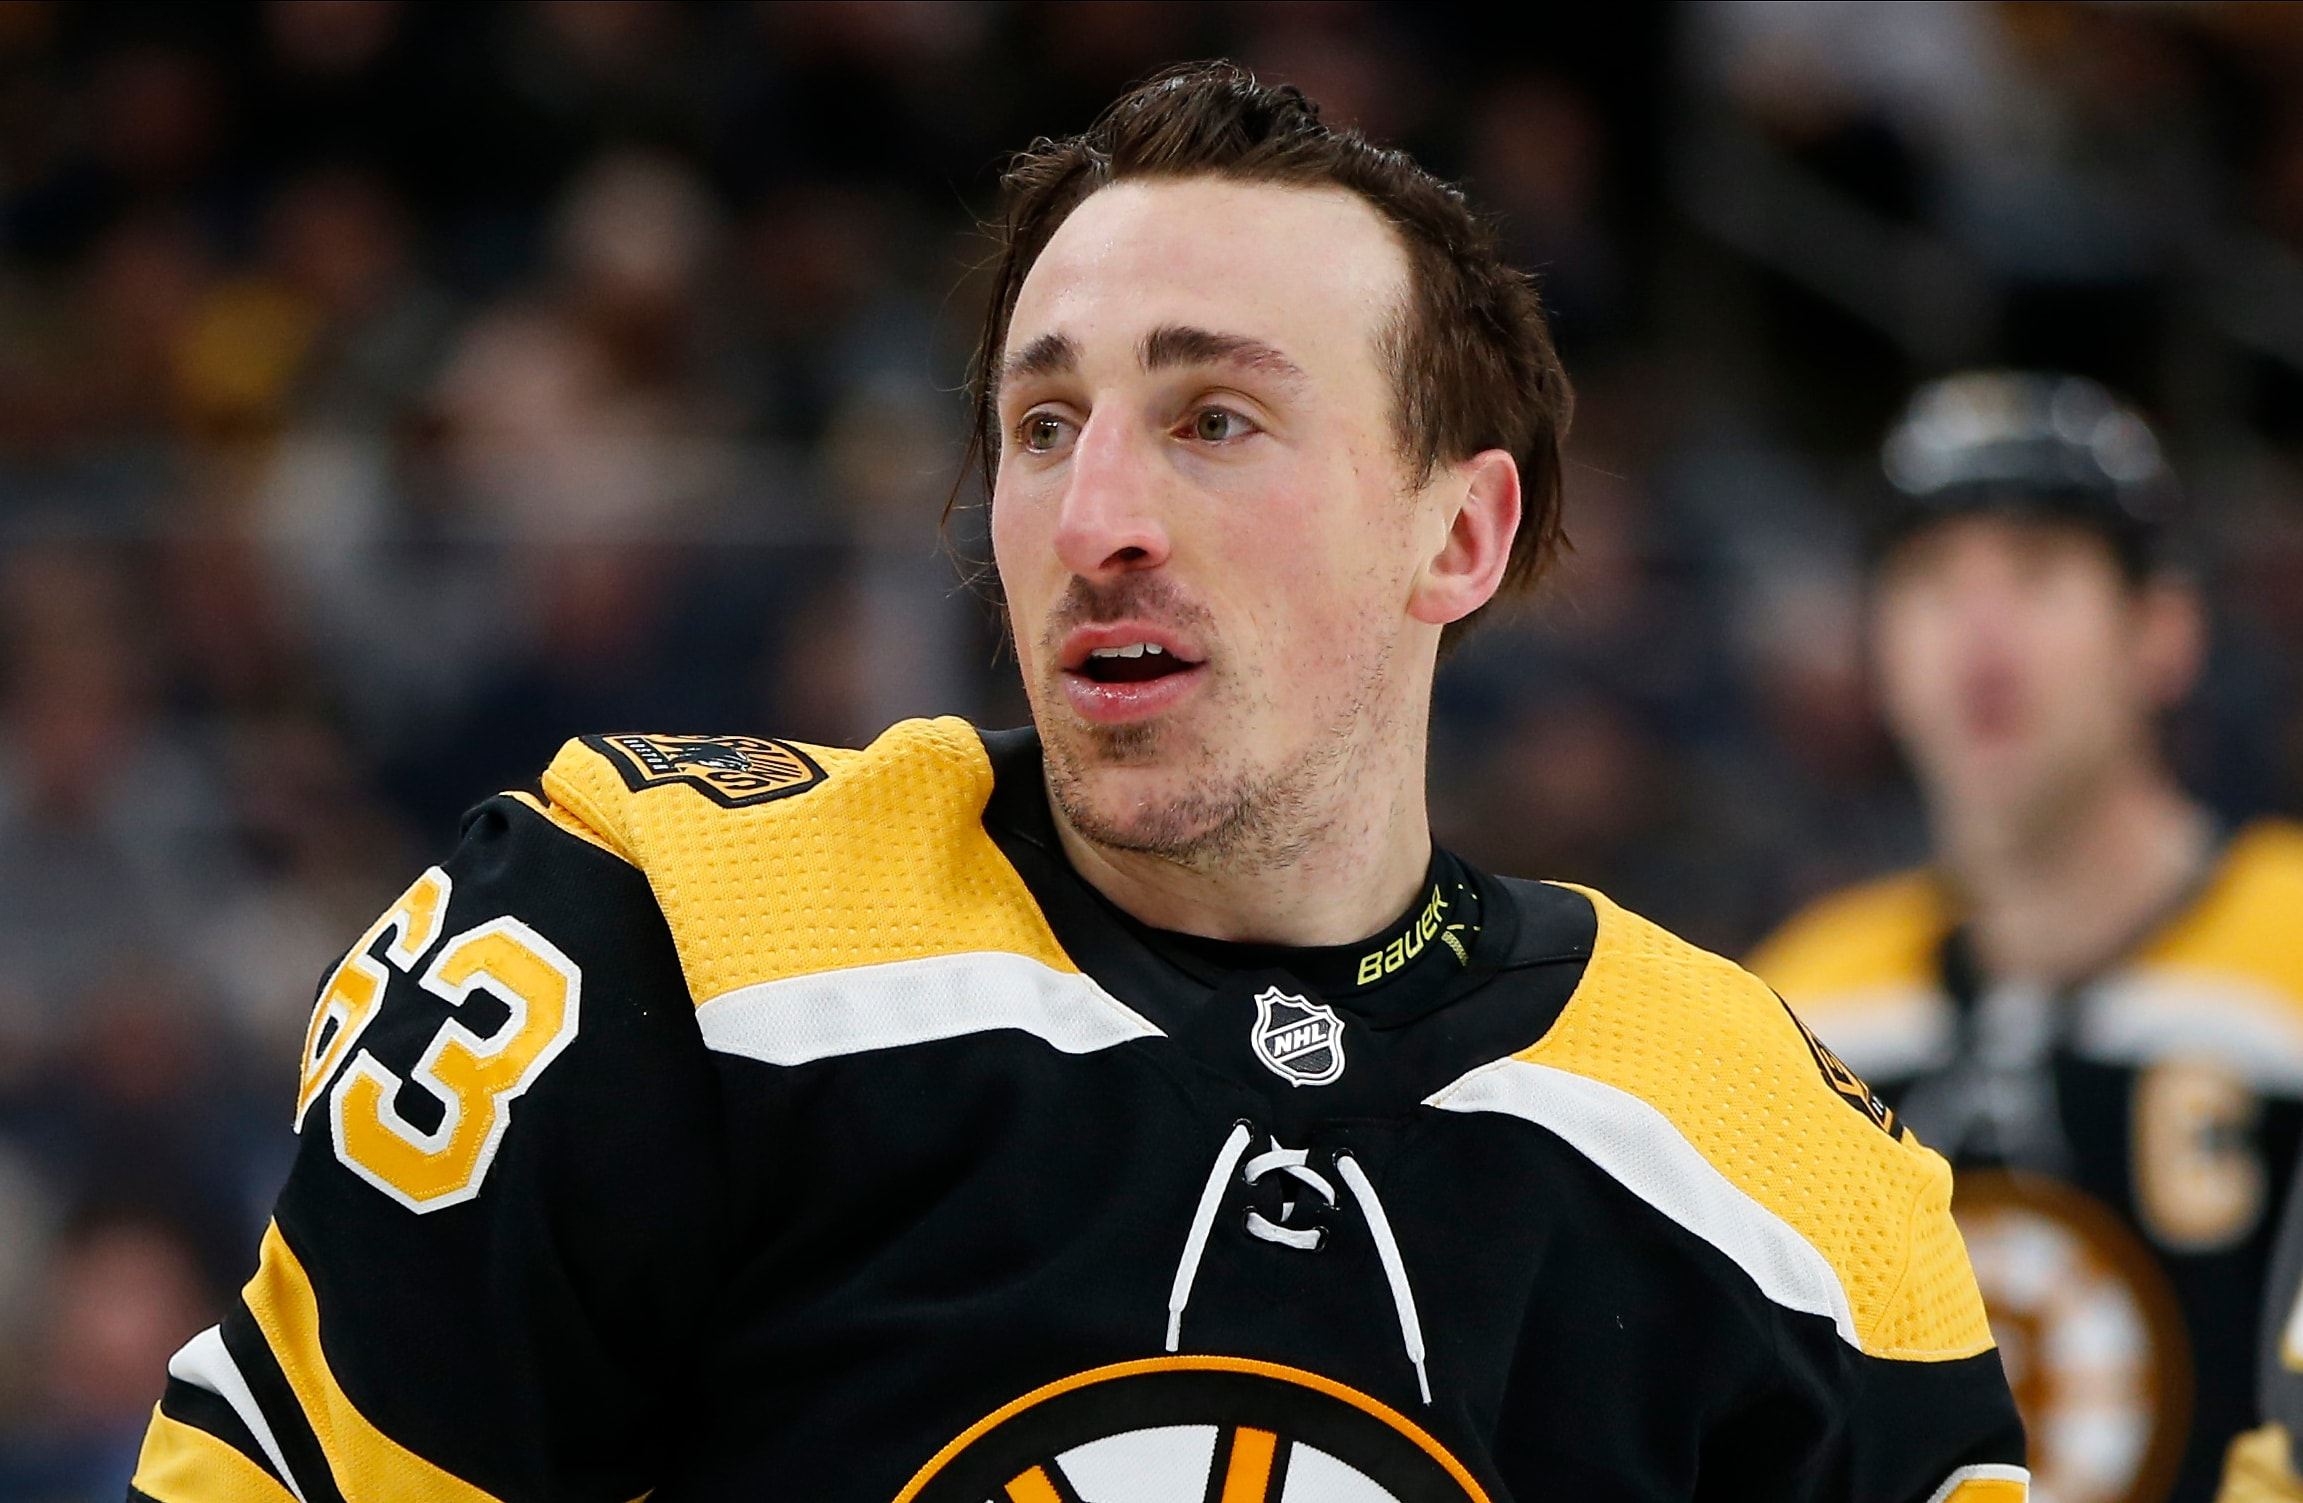 Brad Marchand told his Instagram followers how much he can't wait to get back to the NHL playoffs. (Greg M. Cooper-USA TODAY Sports)